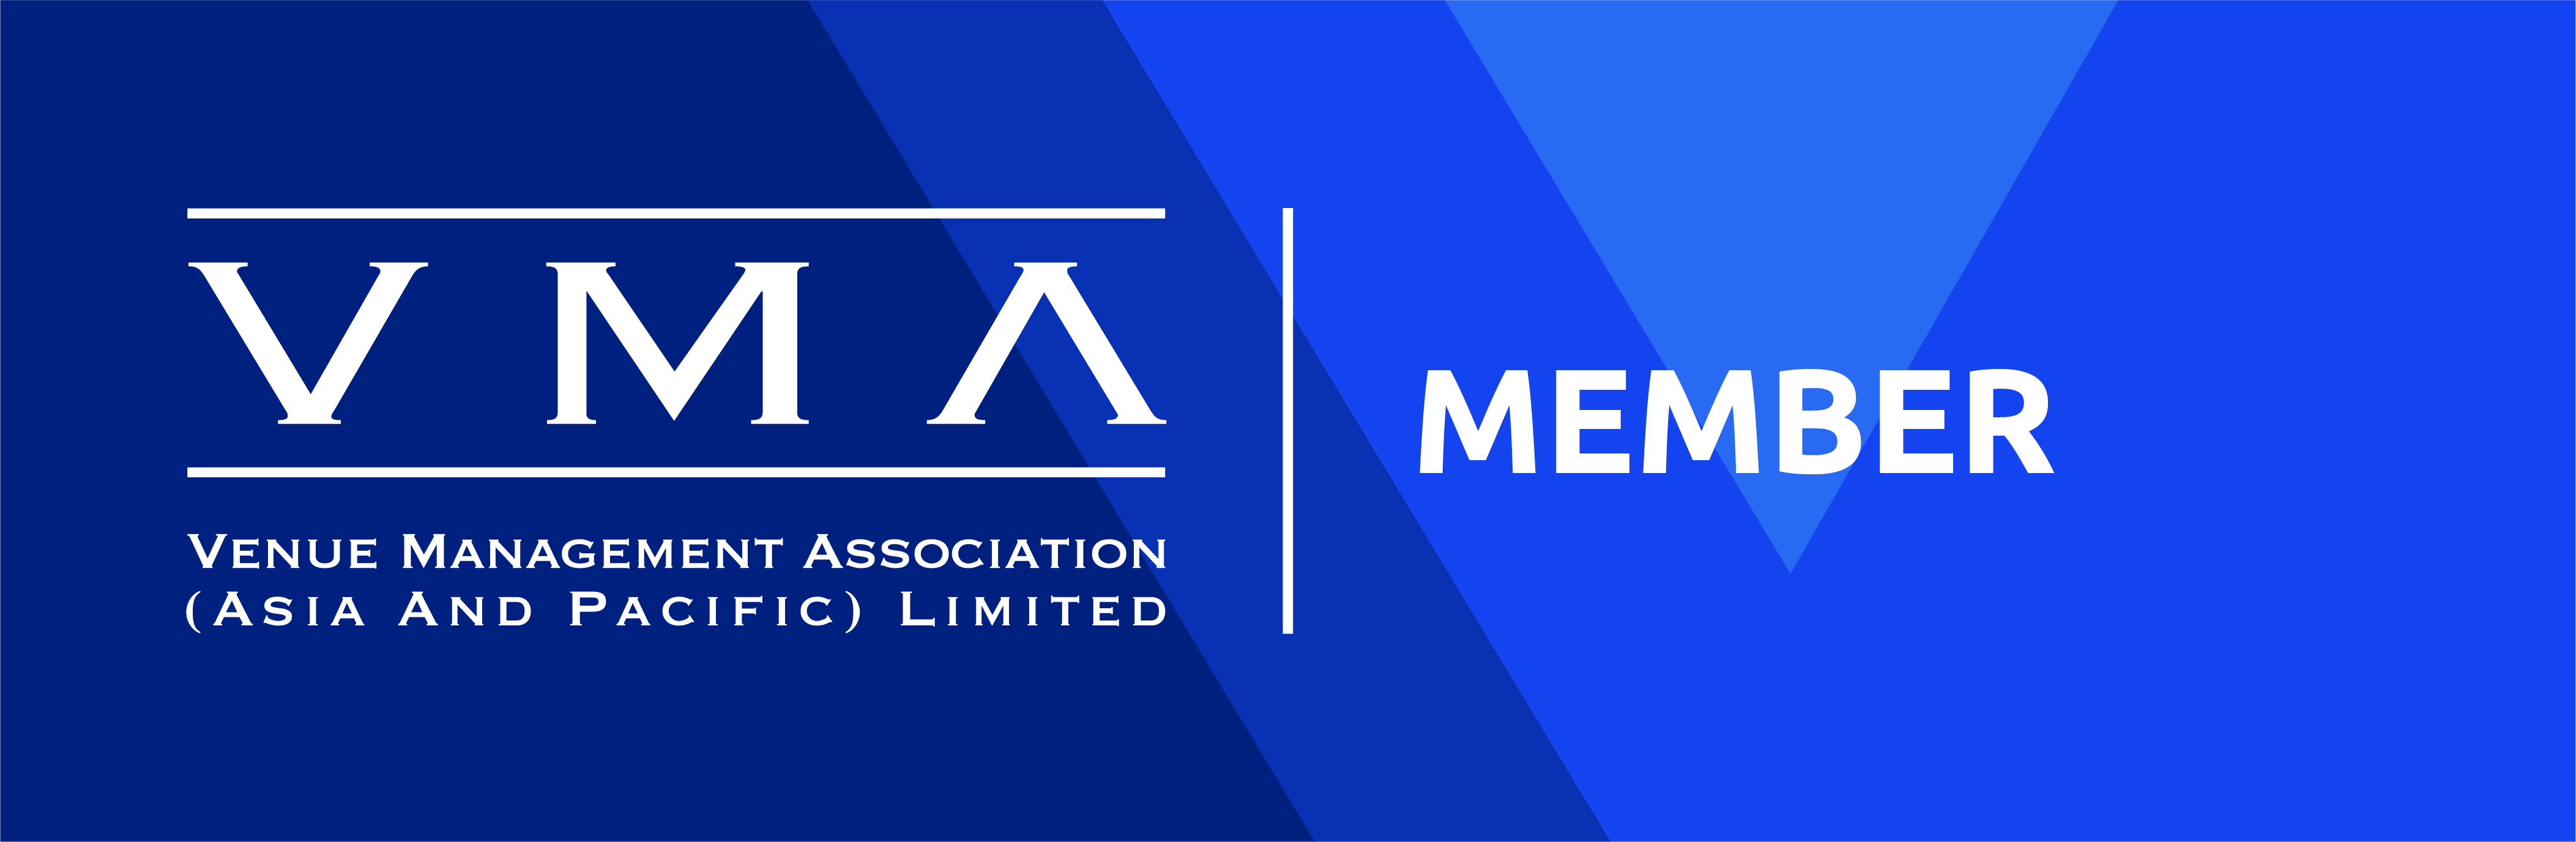 Accredit Solutions becomes VMA member